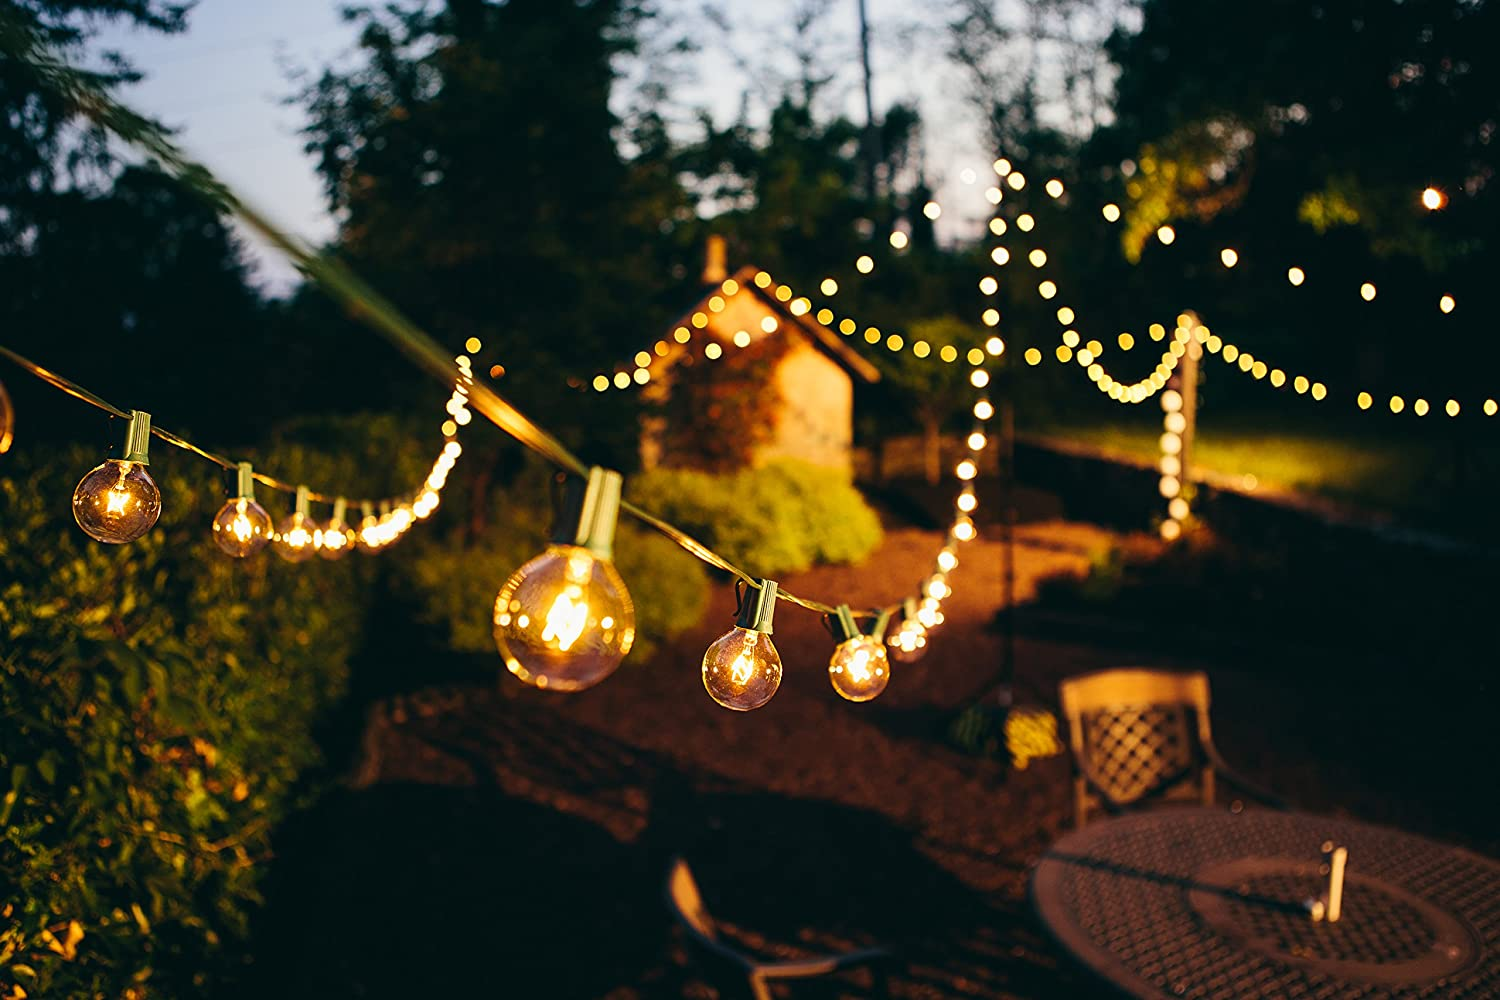 Amazon.com: 100 Foot G50 Patio Globe String Lights with 2 Inch ...